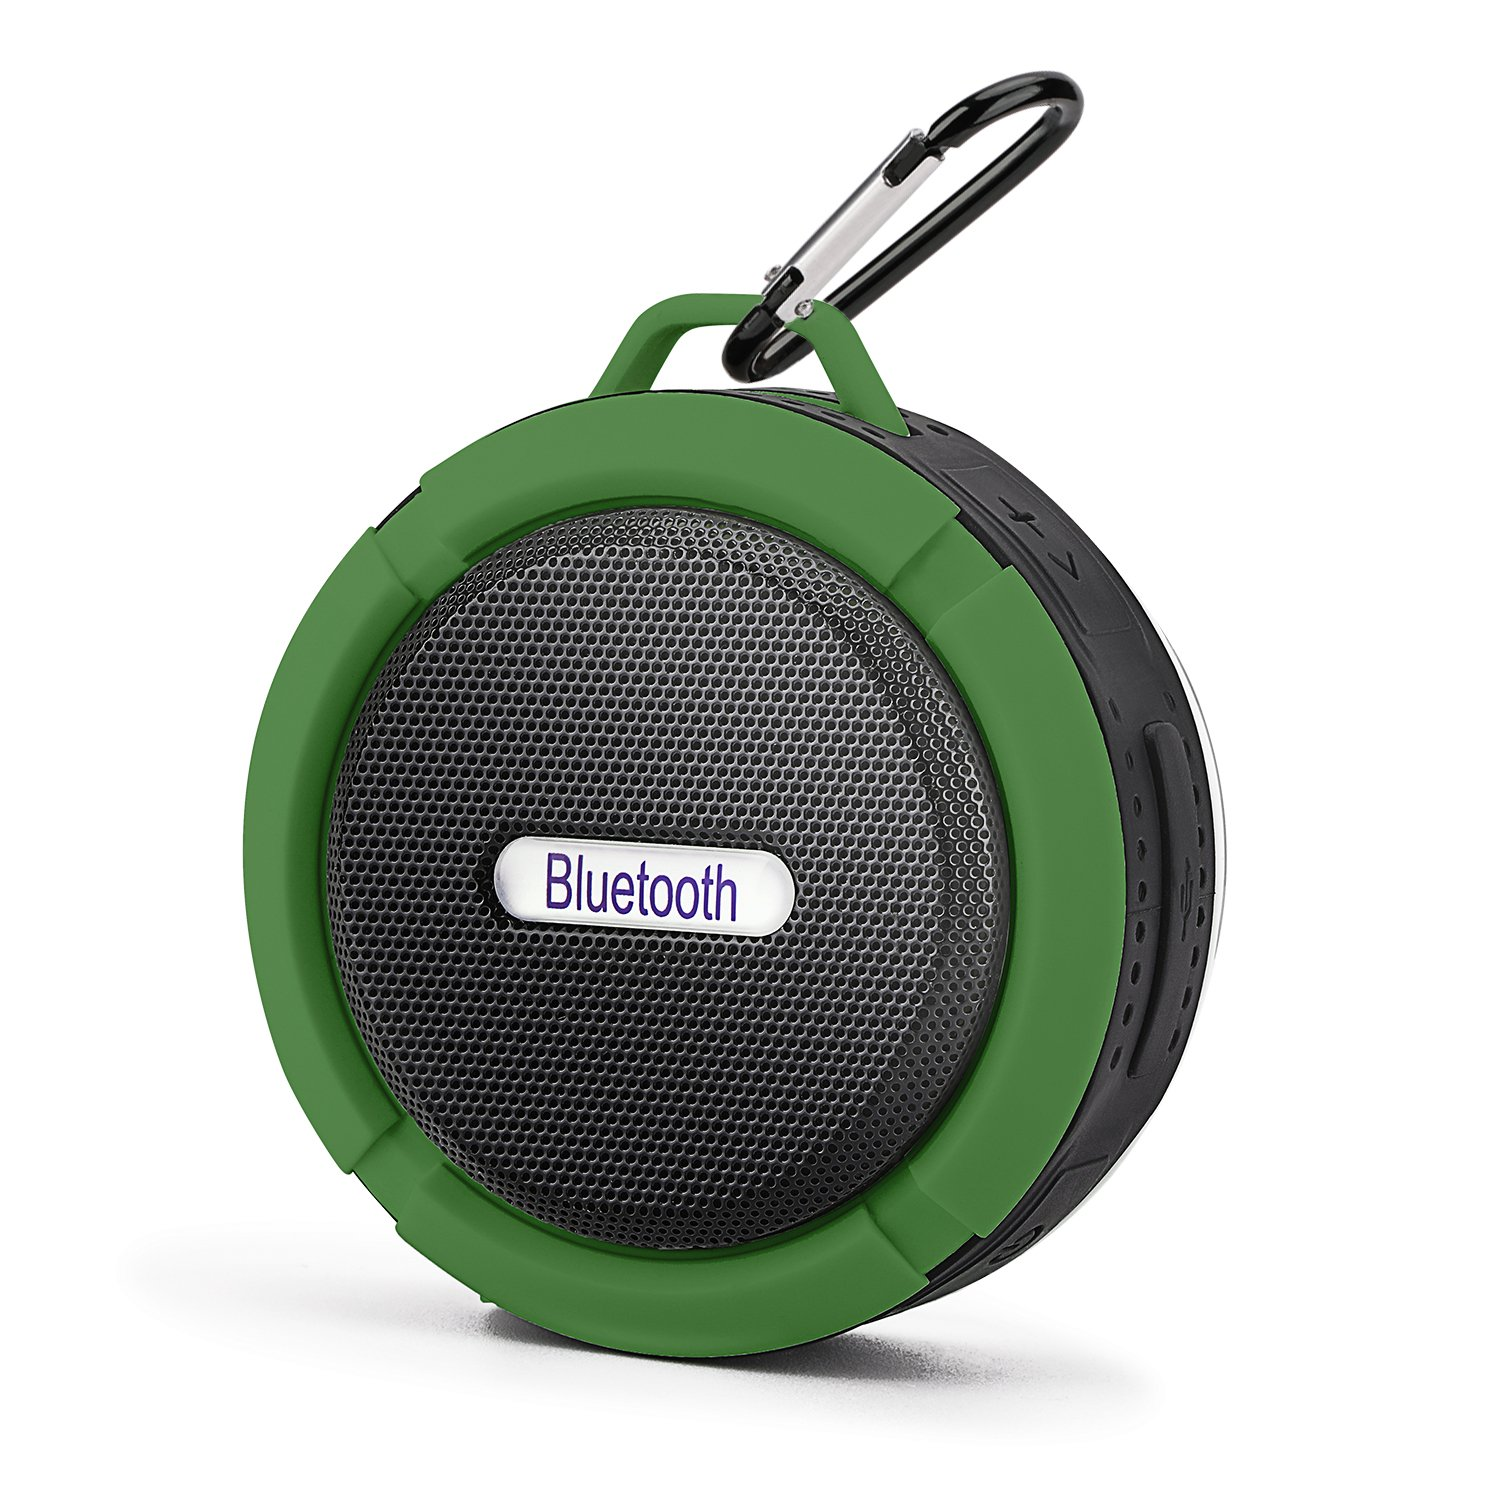 Mini Bluetooth Speaker,Retround Waterproof Speaker with Built-in Mic,High Sound Quality,6hrs of Playtime,Rechargeable,for Travel and Outdoor Green